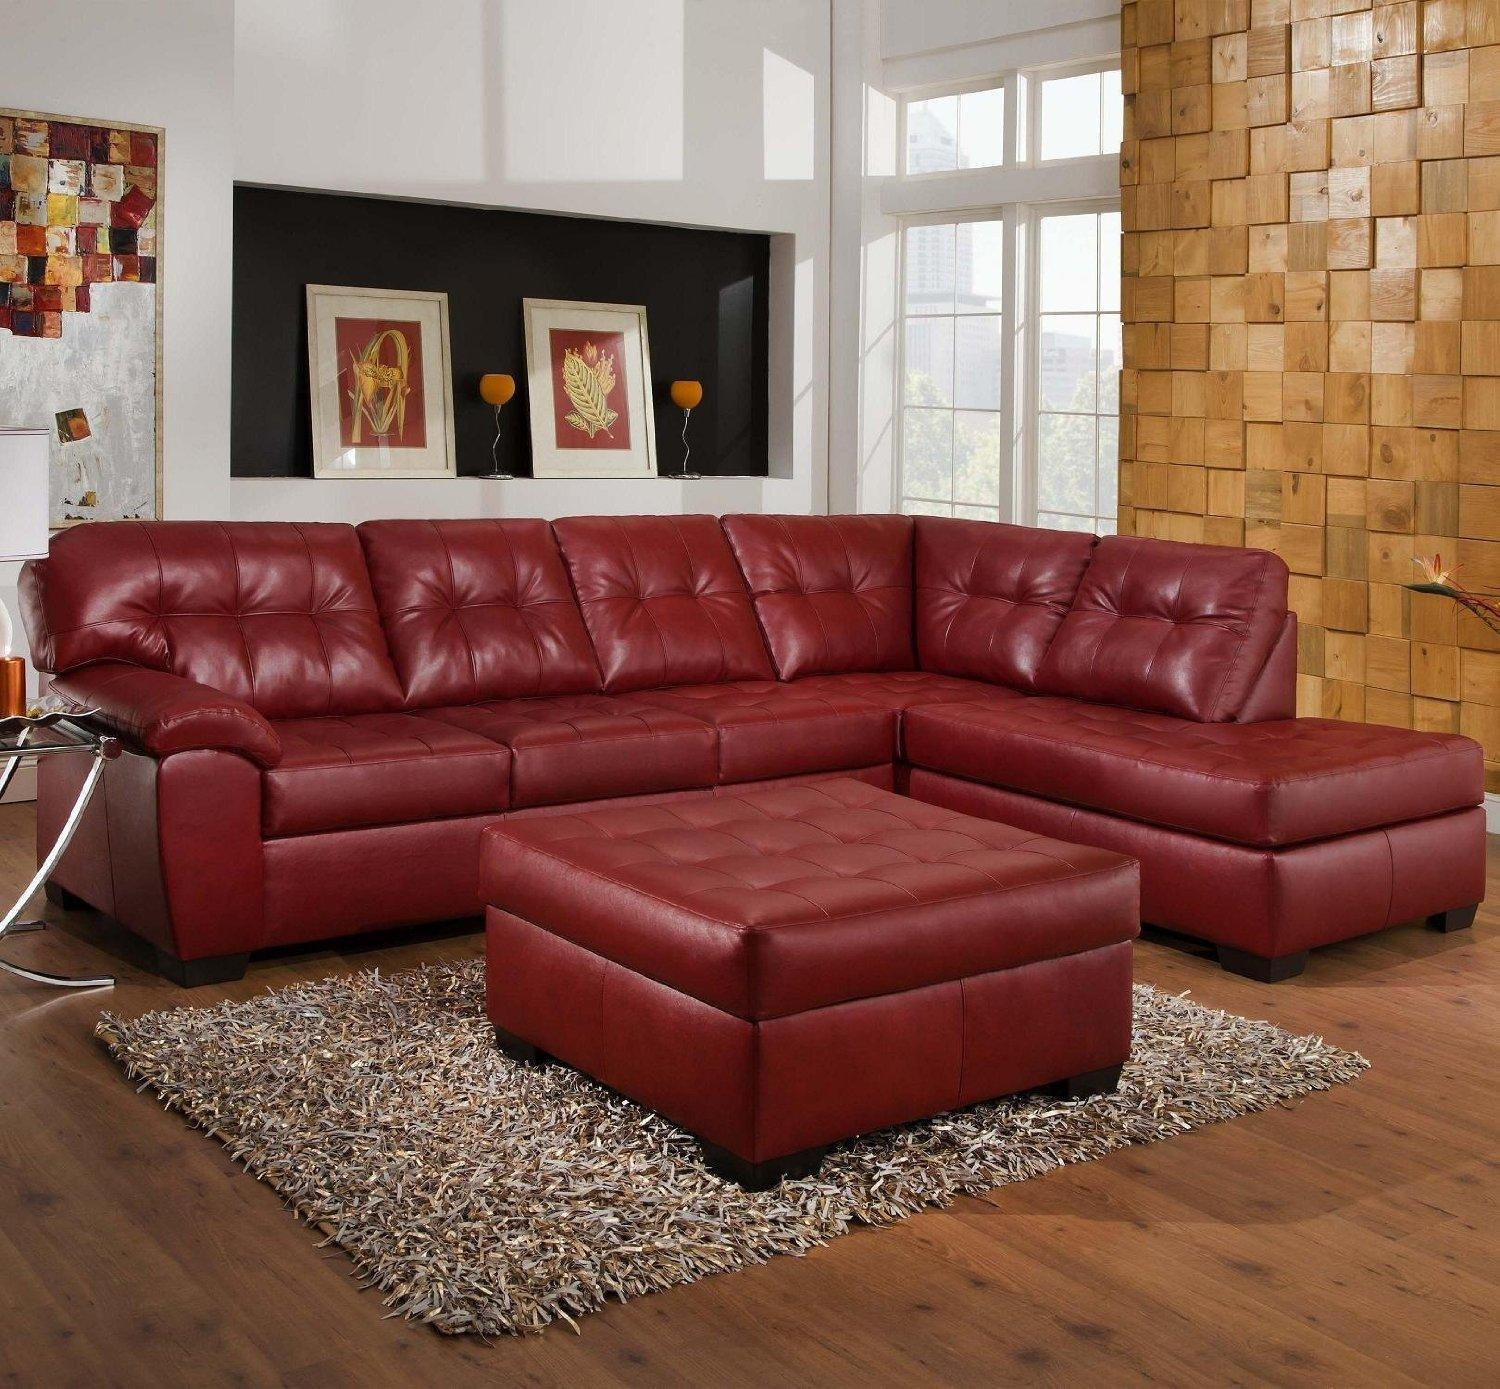 Stylish Red Leather Couches Home Decor Furniture Within Dark Image